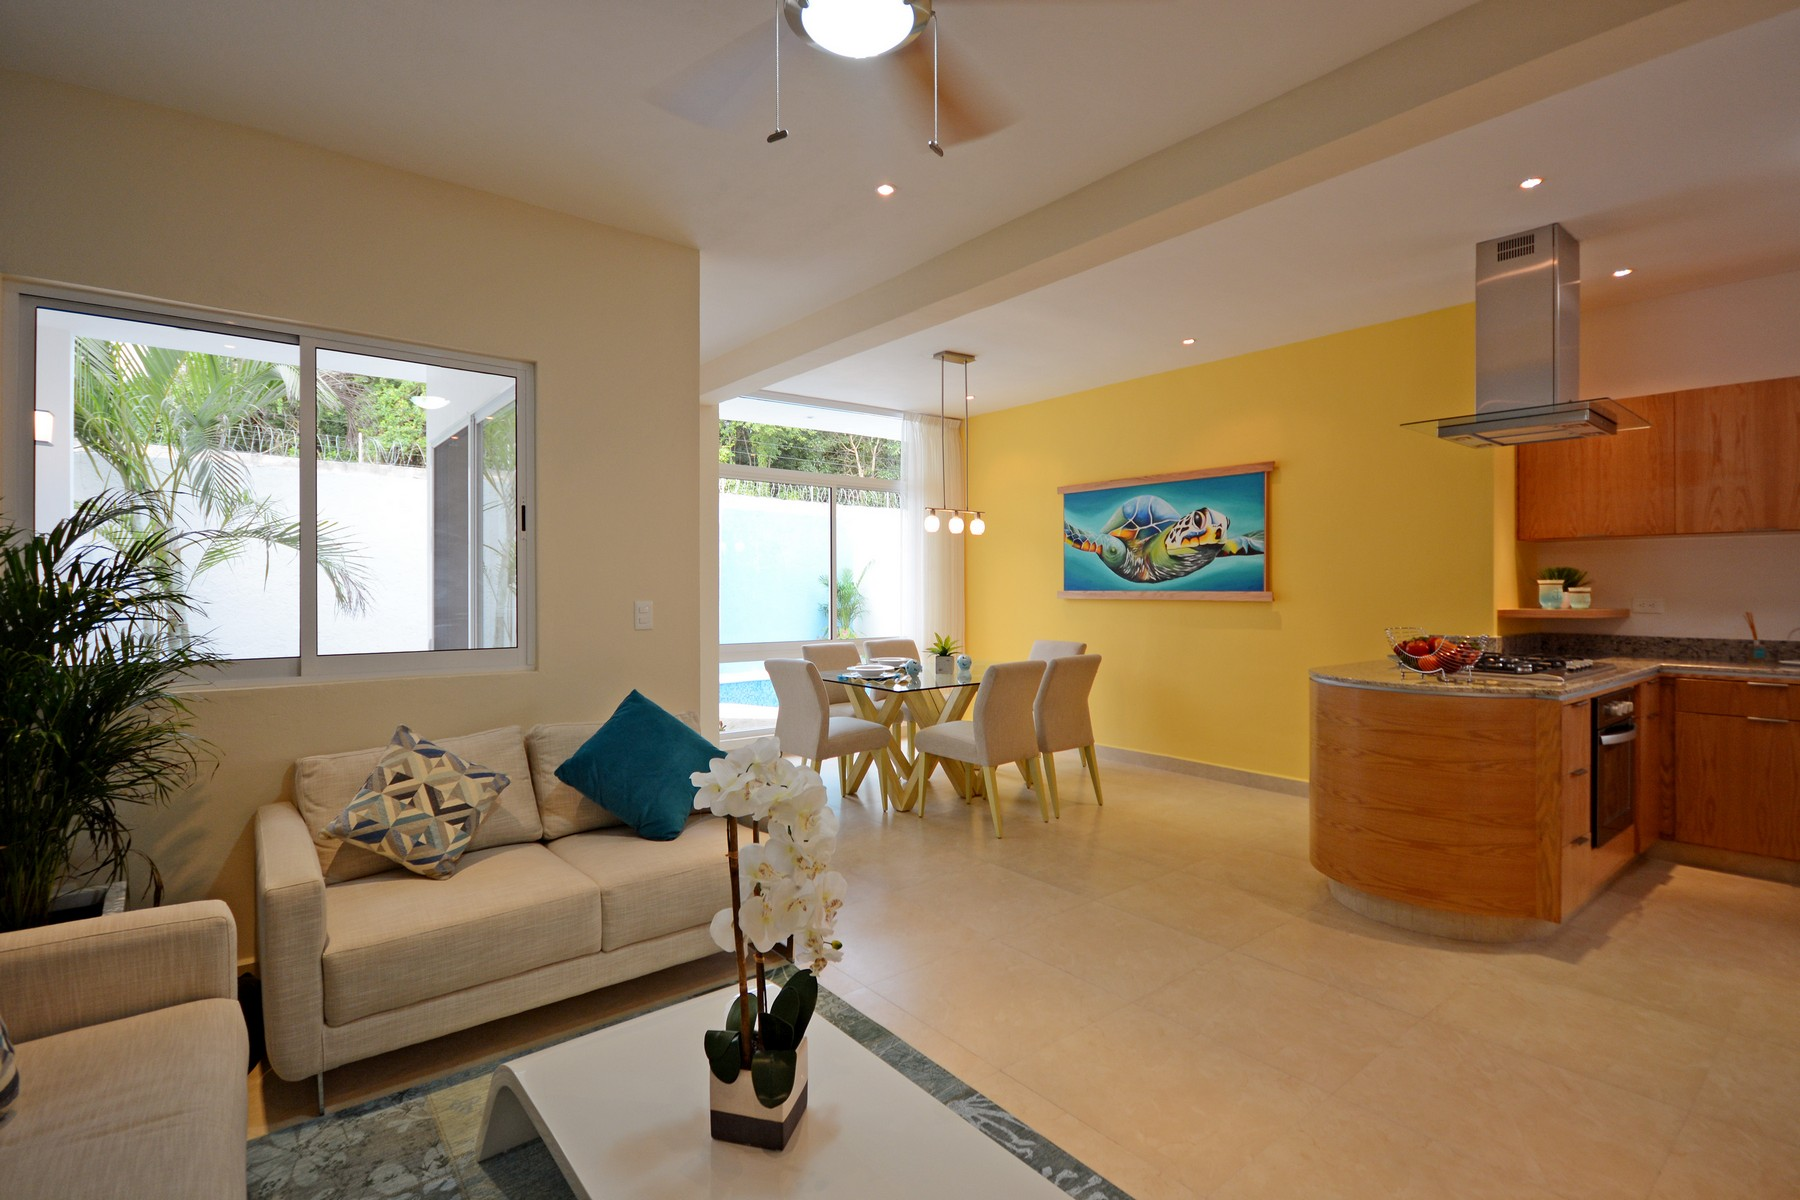 Tek Ailelik Ev için Satış at LUXURY VILLA IN A GATED COMMUNITY Privada Orquídeas Selvamar Playa Del Carmen, Quintana Roo, 77710 Meksika